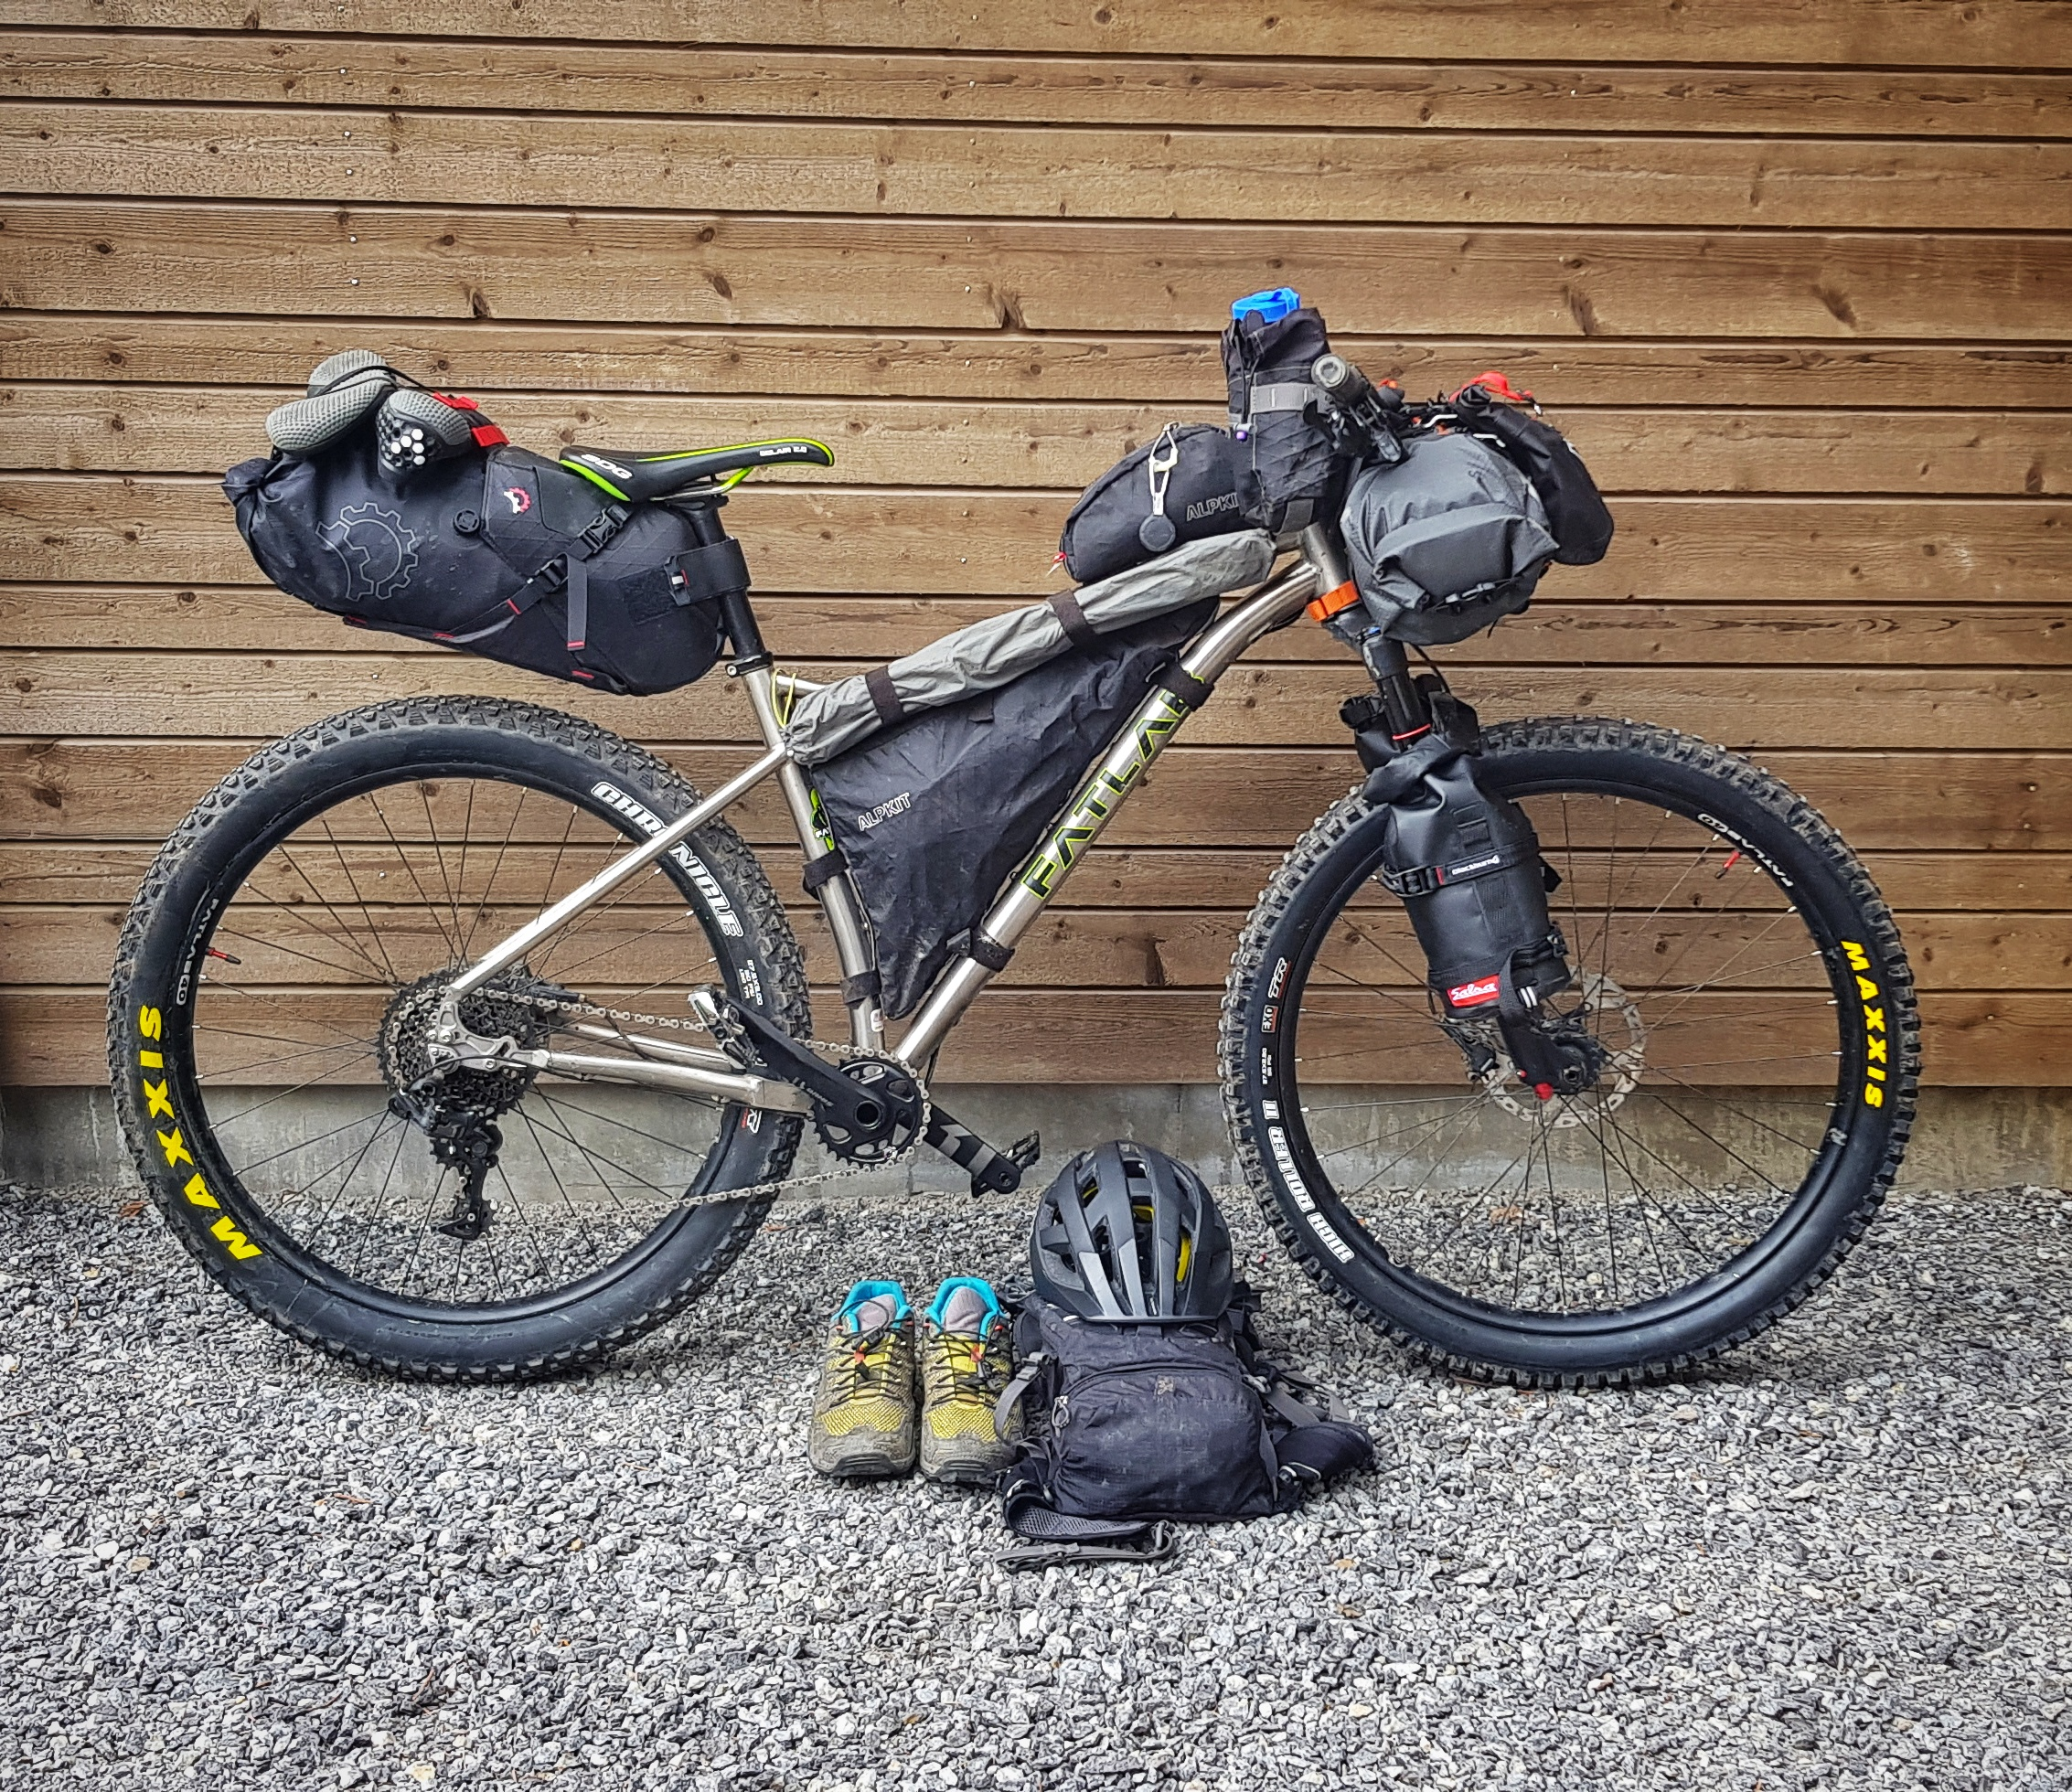 What got you into Bikepacking? - I have always been in to climbing and camping so when an unexpected invitation to go on a bikepacking trip to Mongolia.